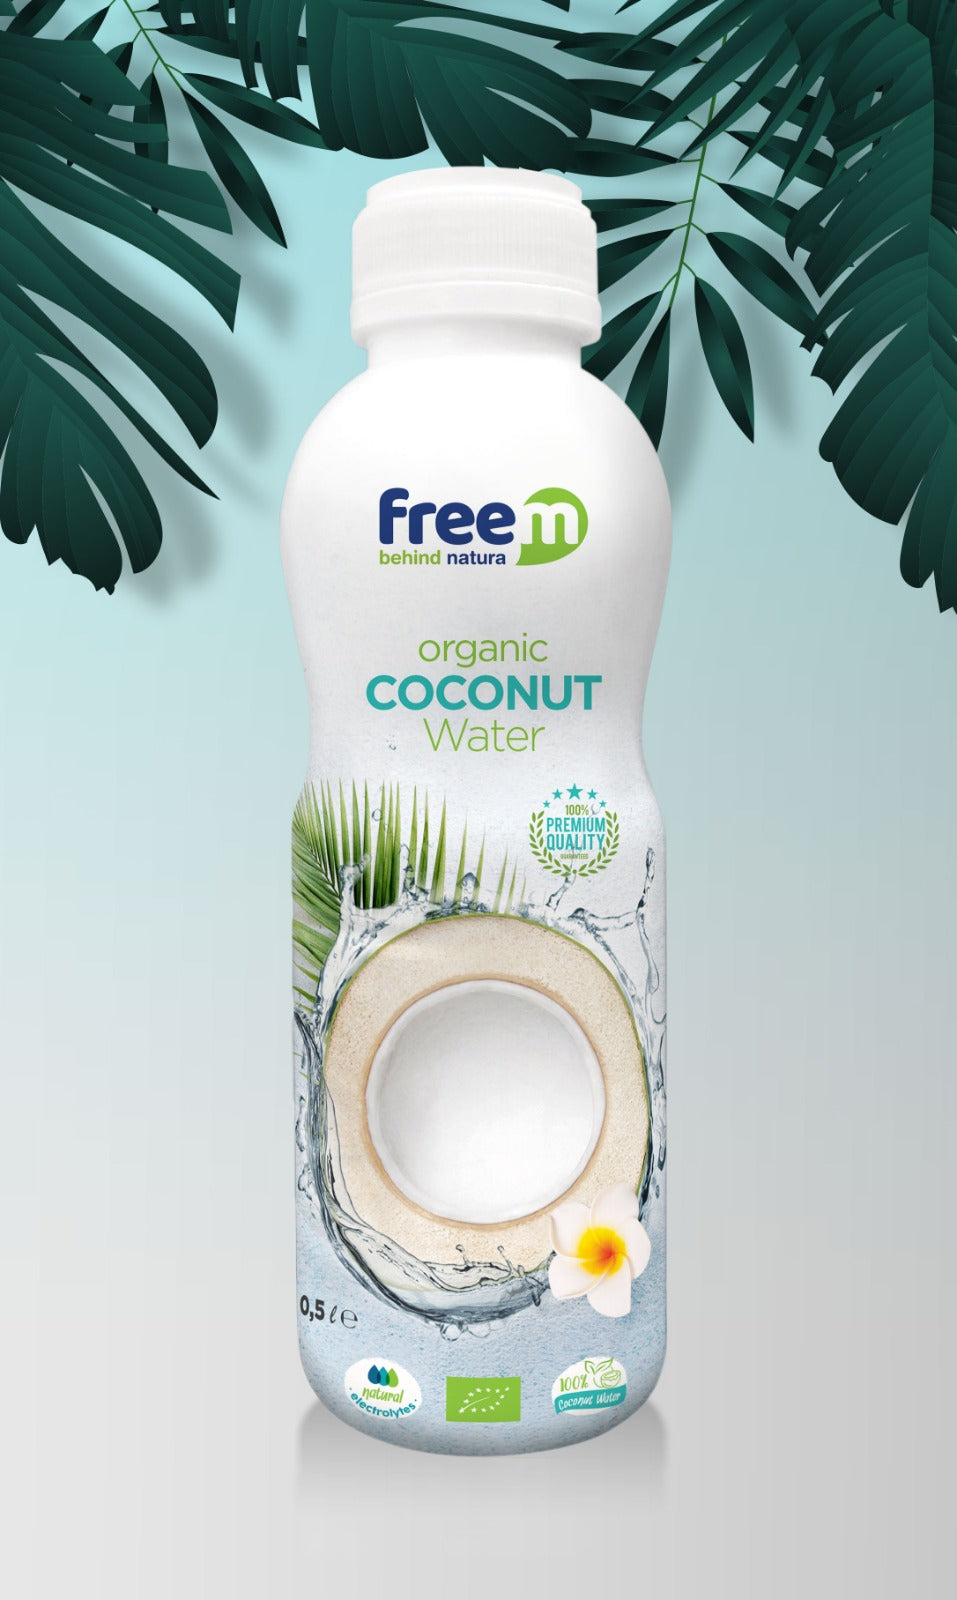 Organic freem coconut WATER 500ml x12